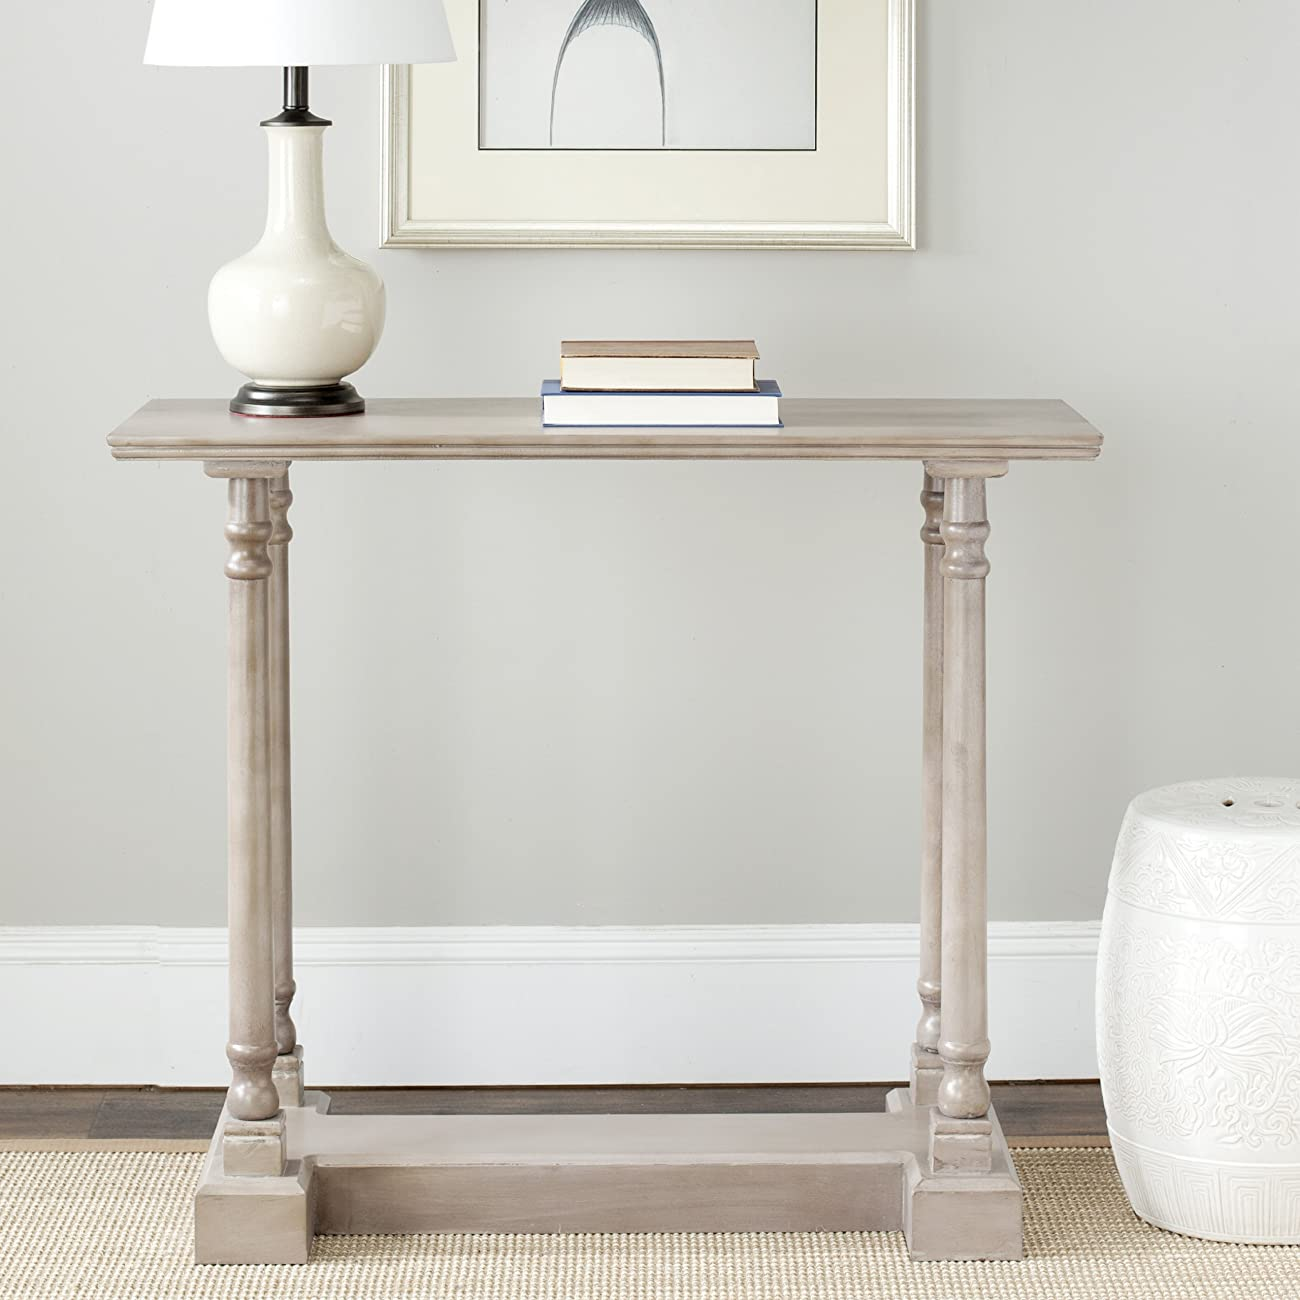 Safavieh American Home Collection Concord Console Table, Vintage Grey 3